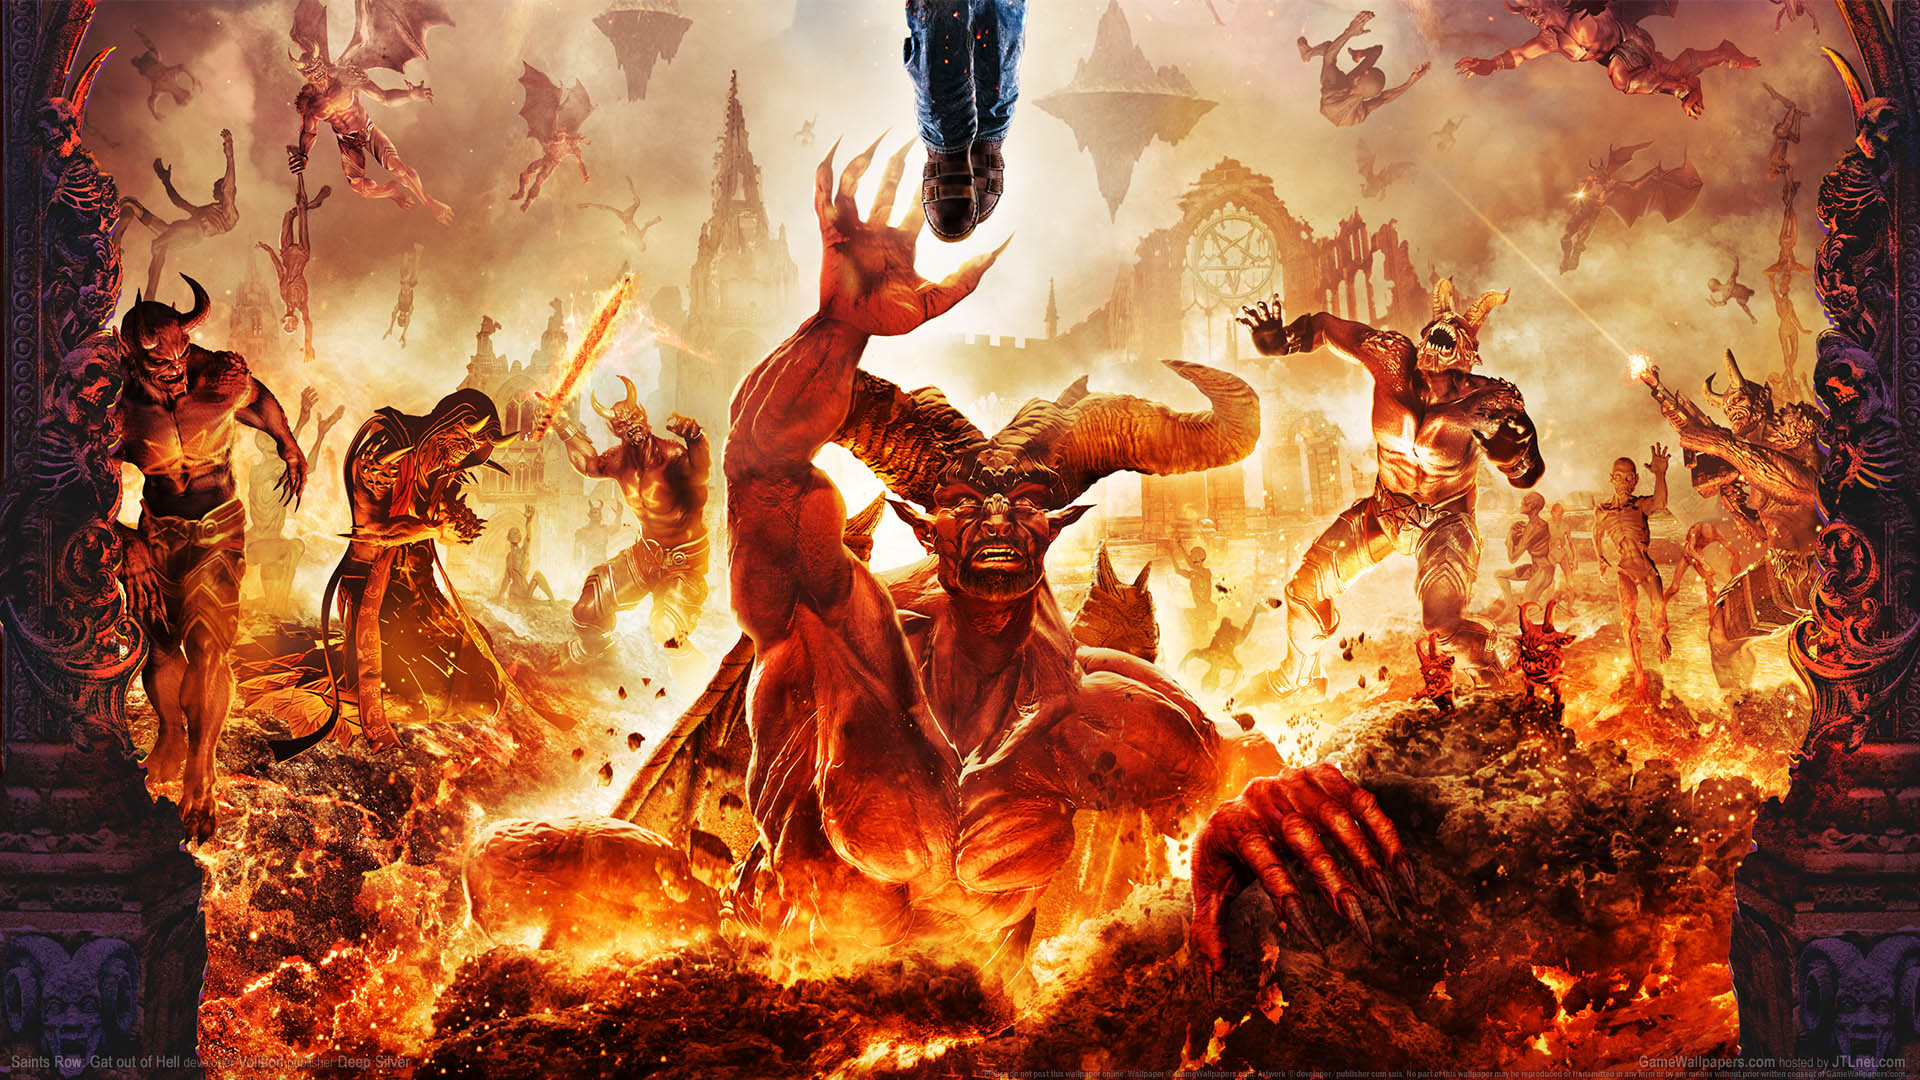 Cool 3d Skull Wallpapers Hell Background Hd Www Pixshark Com Images Galleries